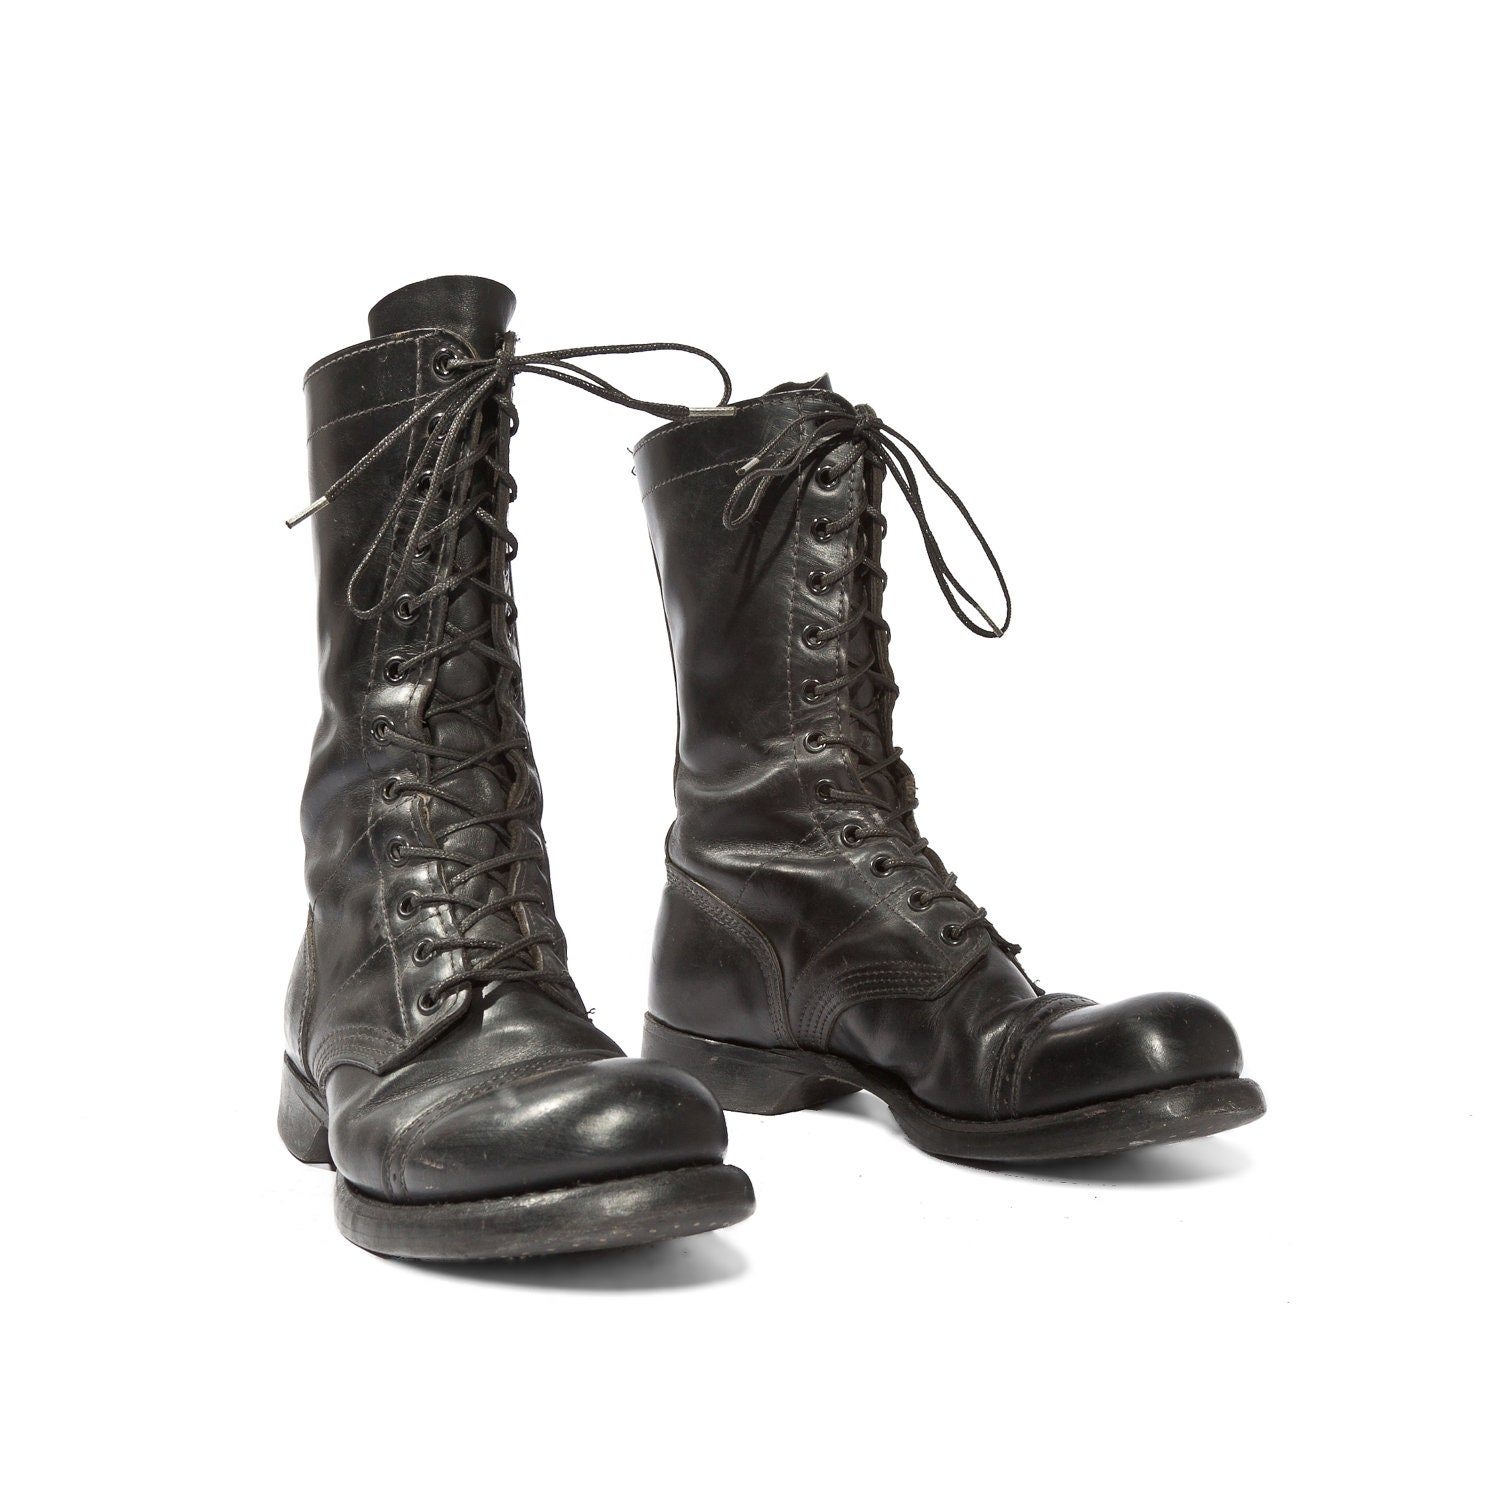 Unique Womens Military Brogue Combat Army Lace Up Boots Size  EBay